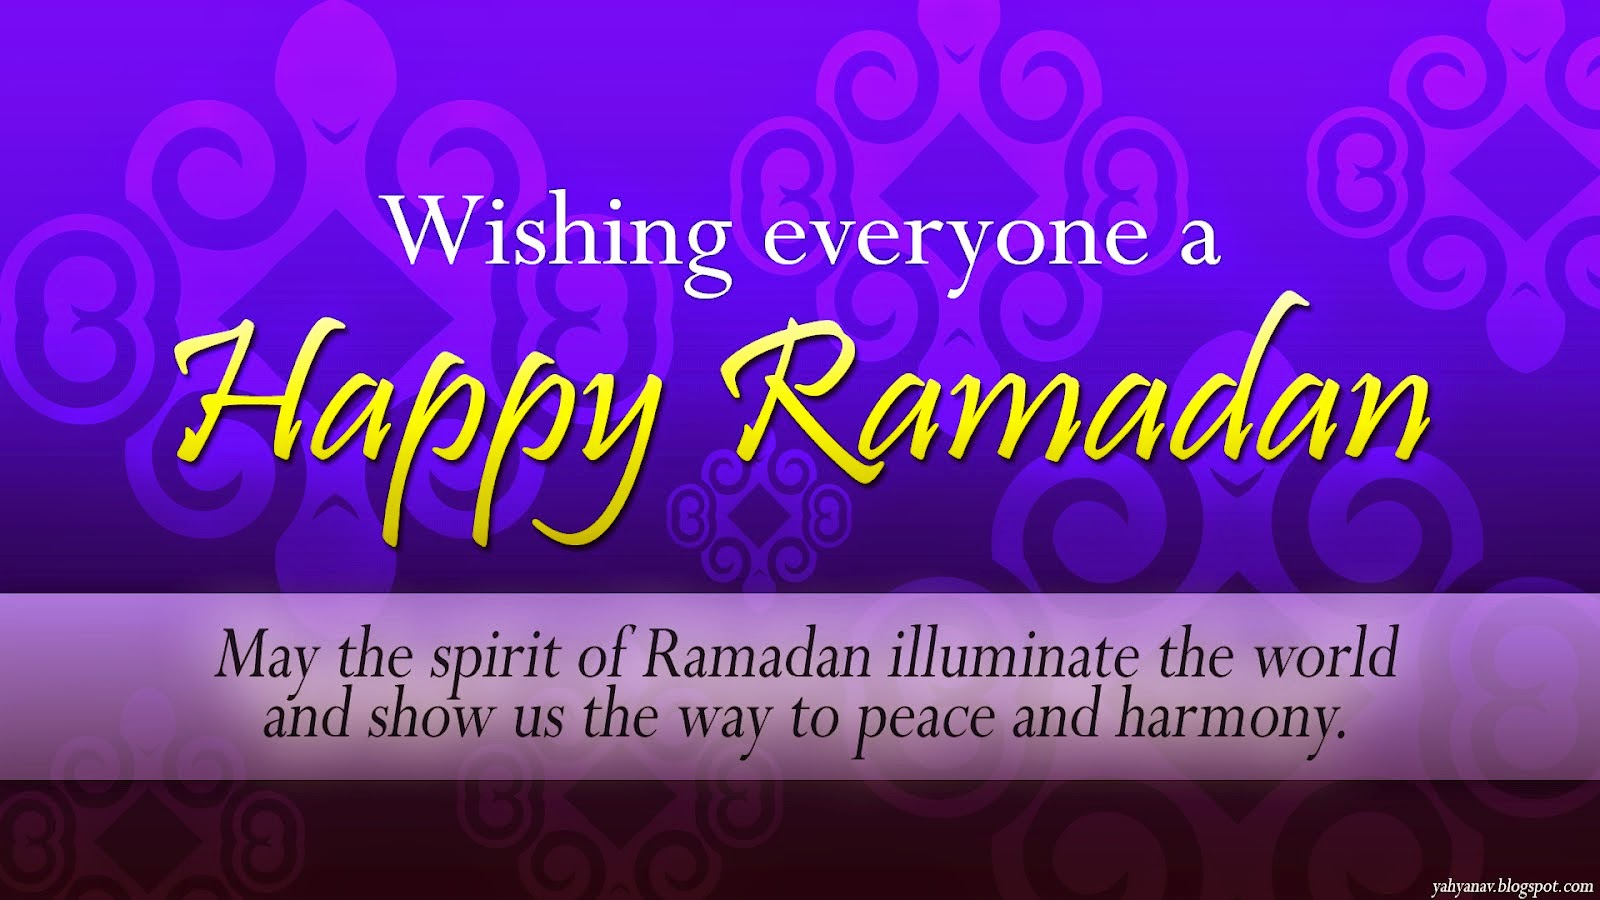 Happy Ramadan Greetings Messages Wallpapers 1024x768 Hd